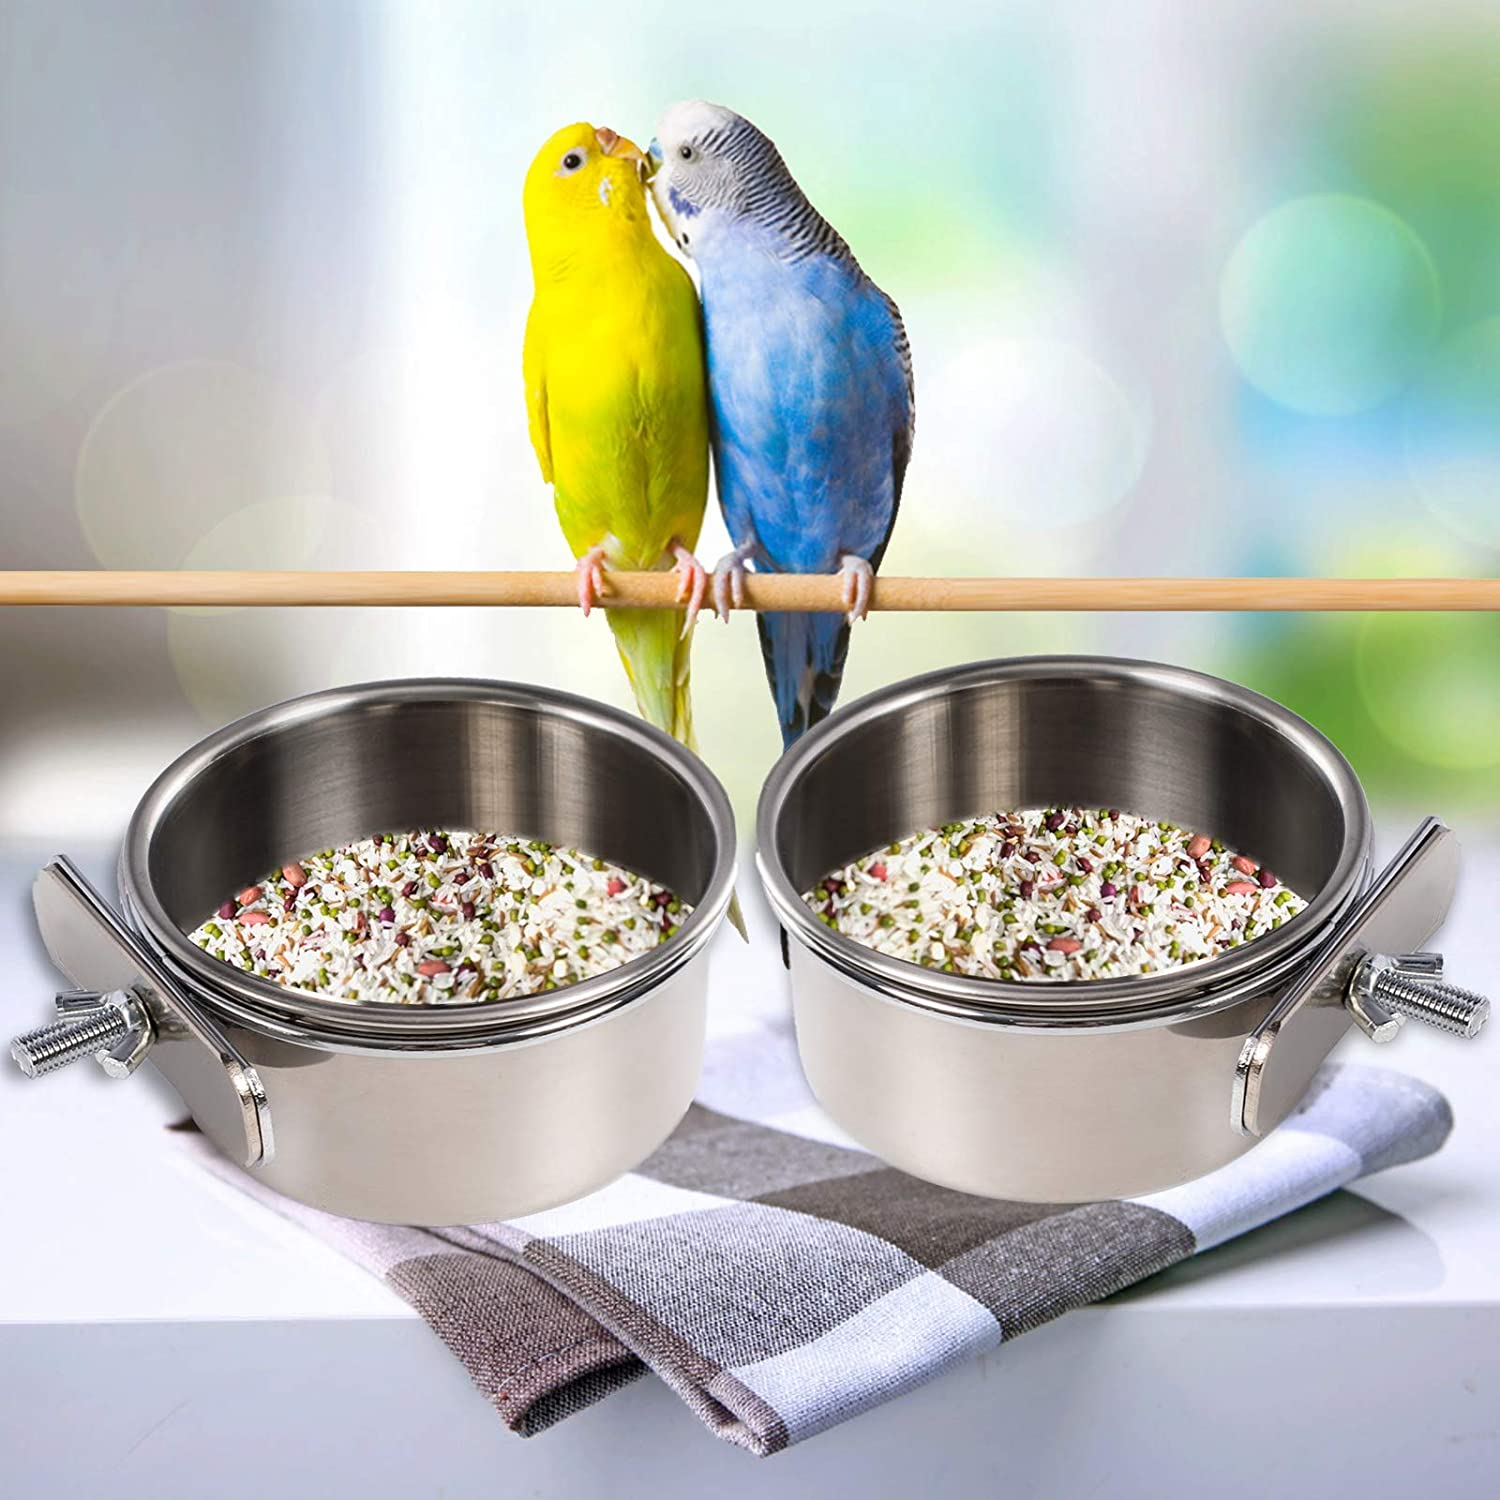 2PCS Parrot Feeder, Bird Feeding Dish Cups, Bird Bowl, Parrot Food Bowl, Bird Feeder for Cage, Feeding Coop Cups, Bird Cage Water Bowl for Small Animal, Parakeet , African Greys Conure, Cockatiels